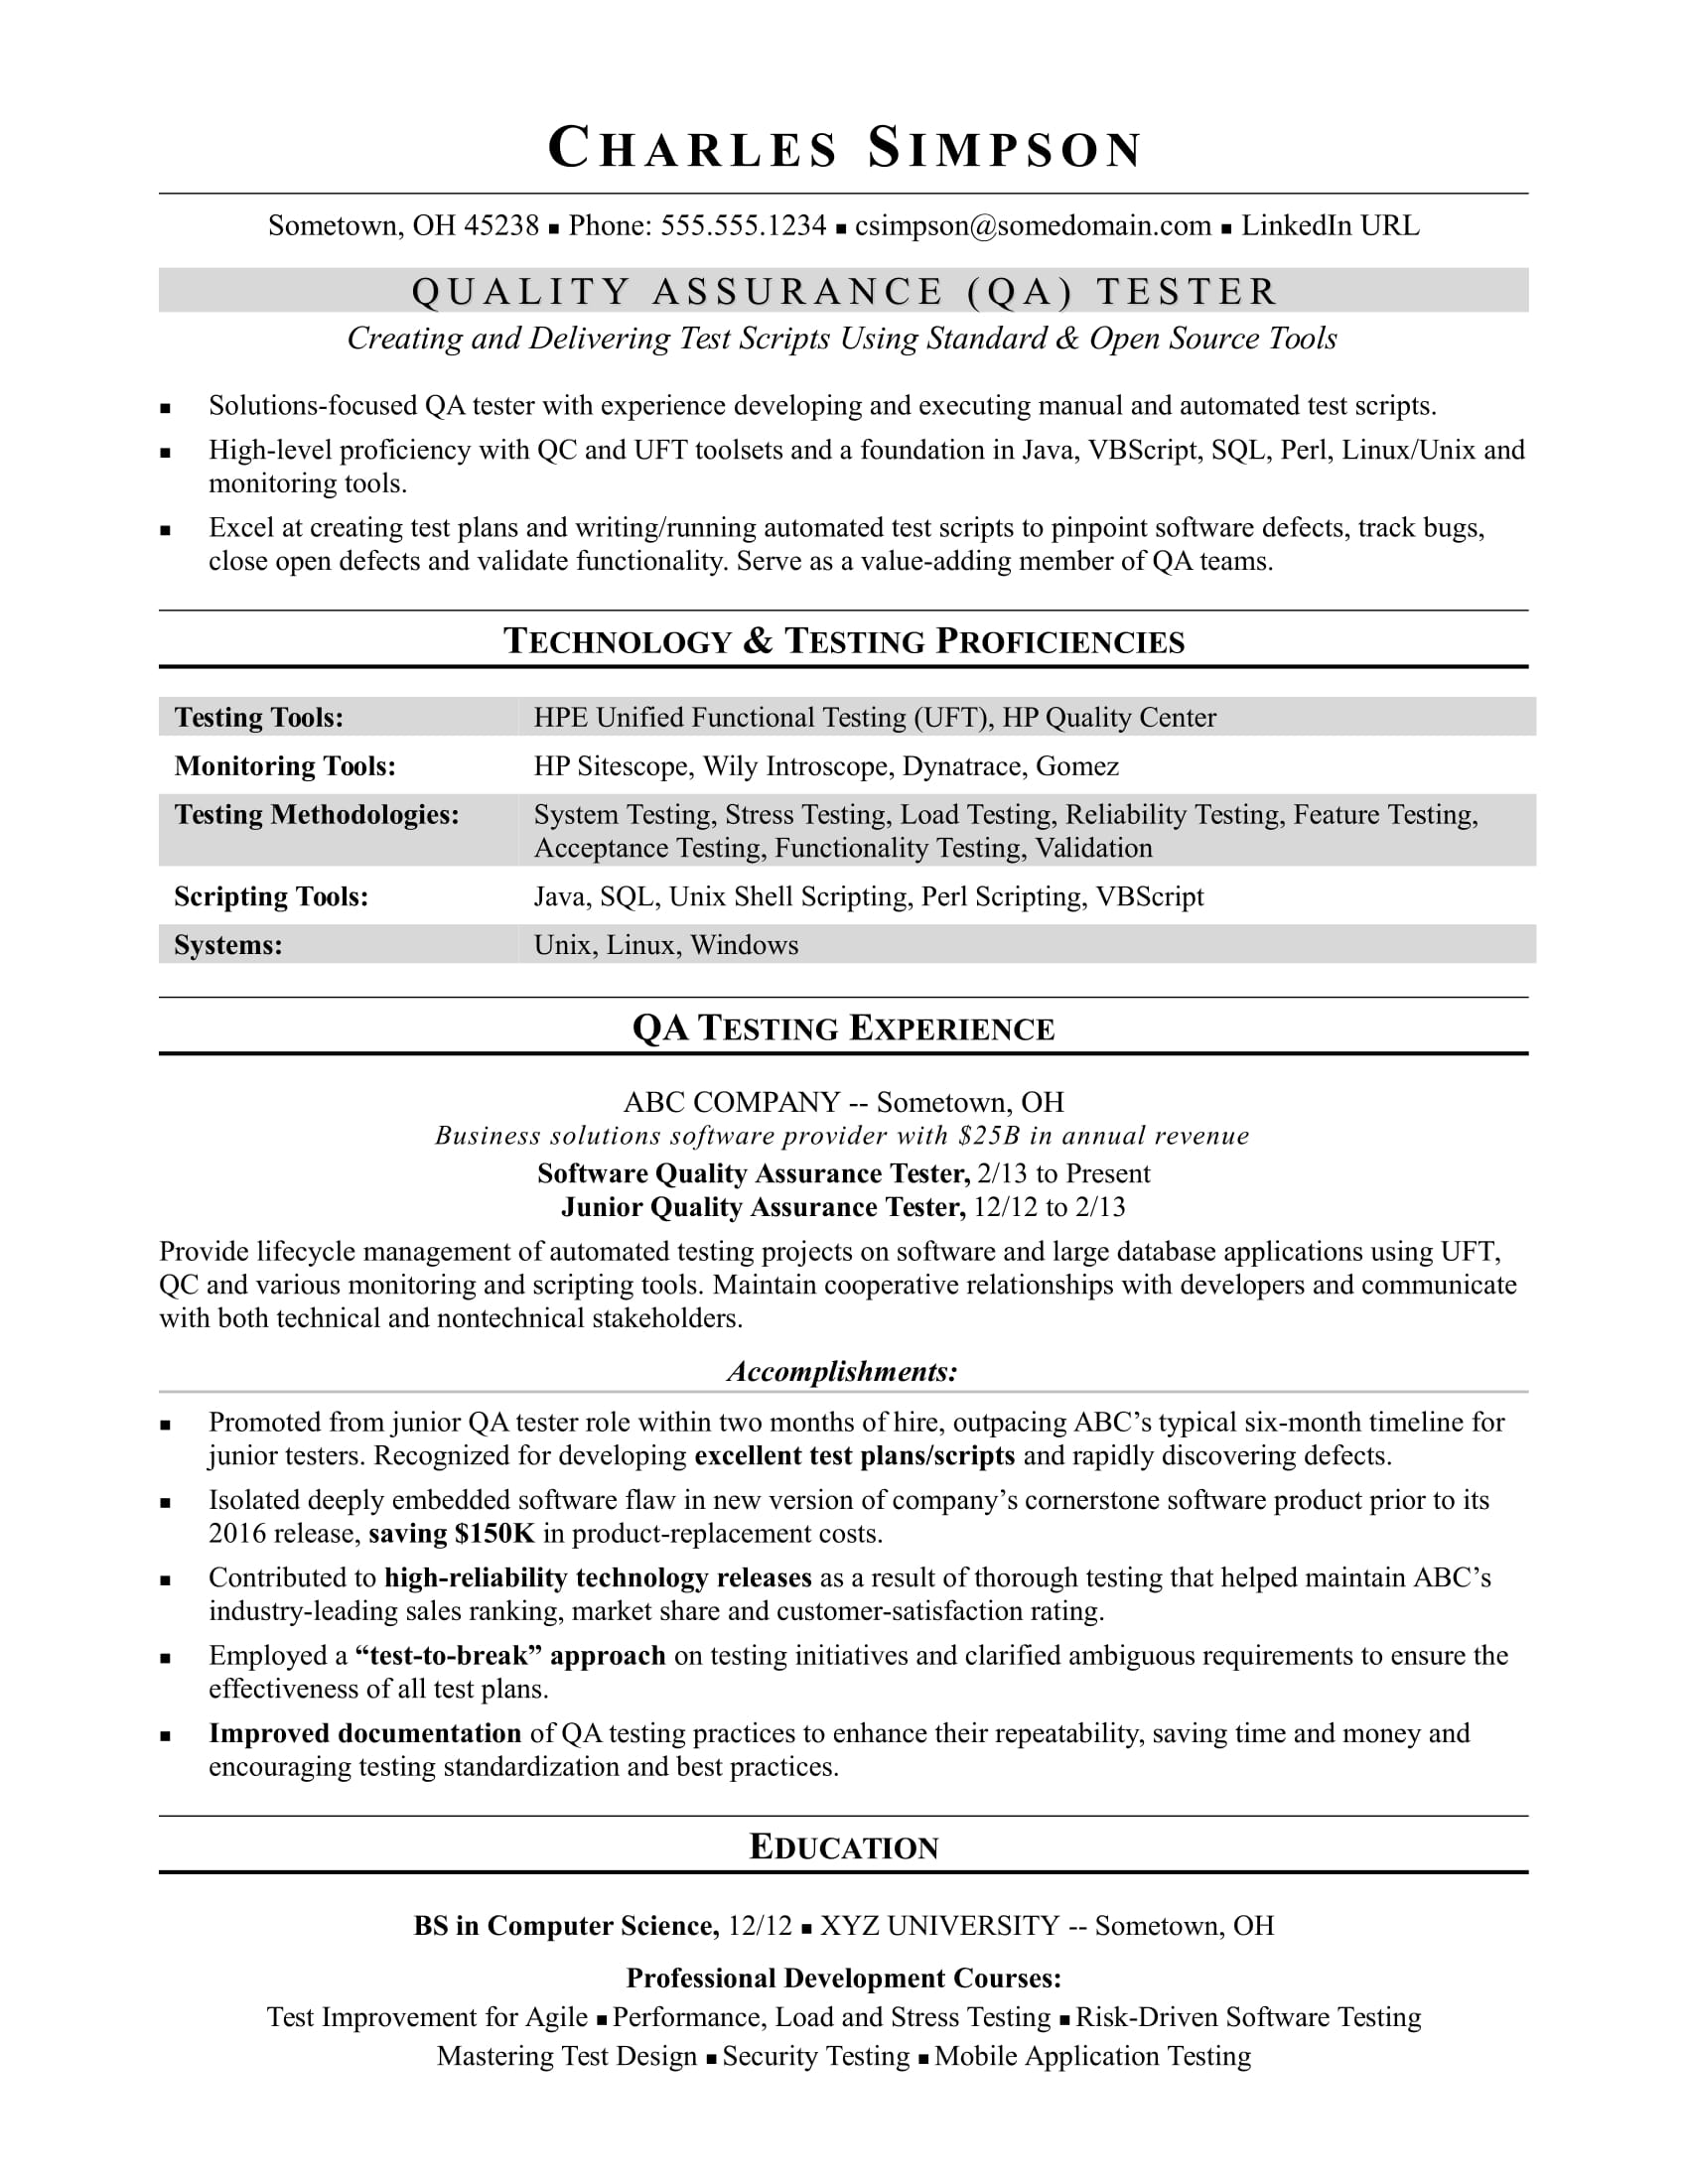 Sample Resume for a Midlevel QA Software Tester Monstercom